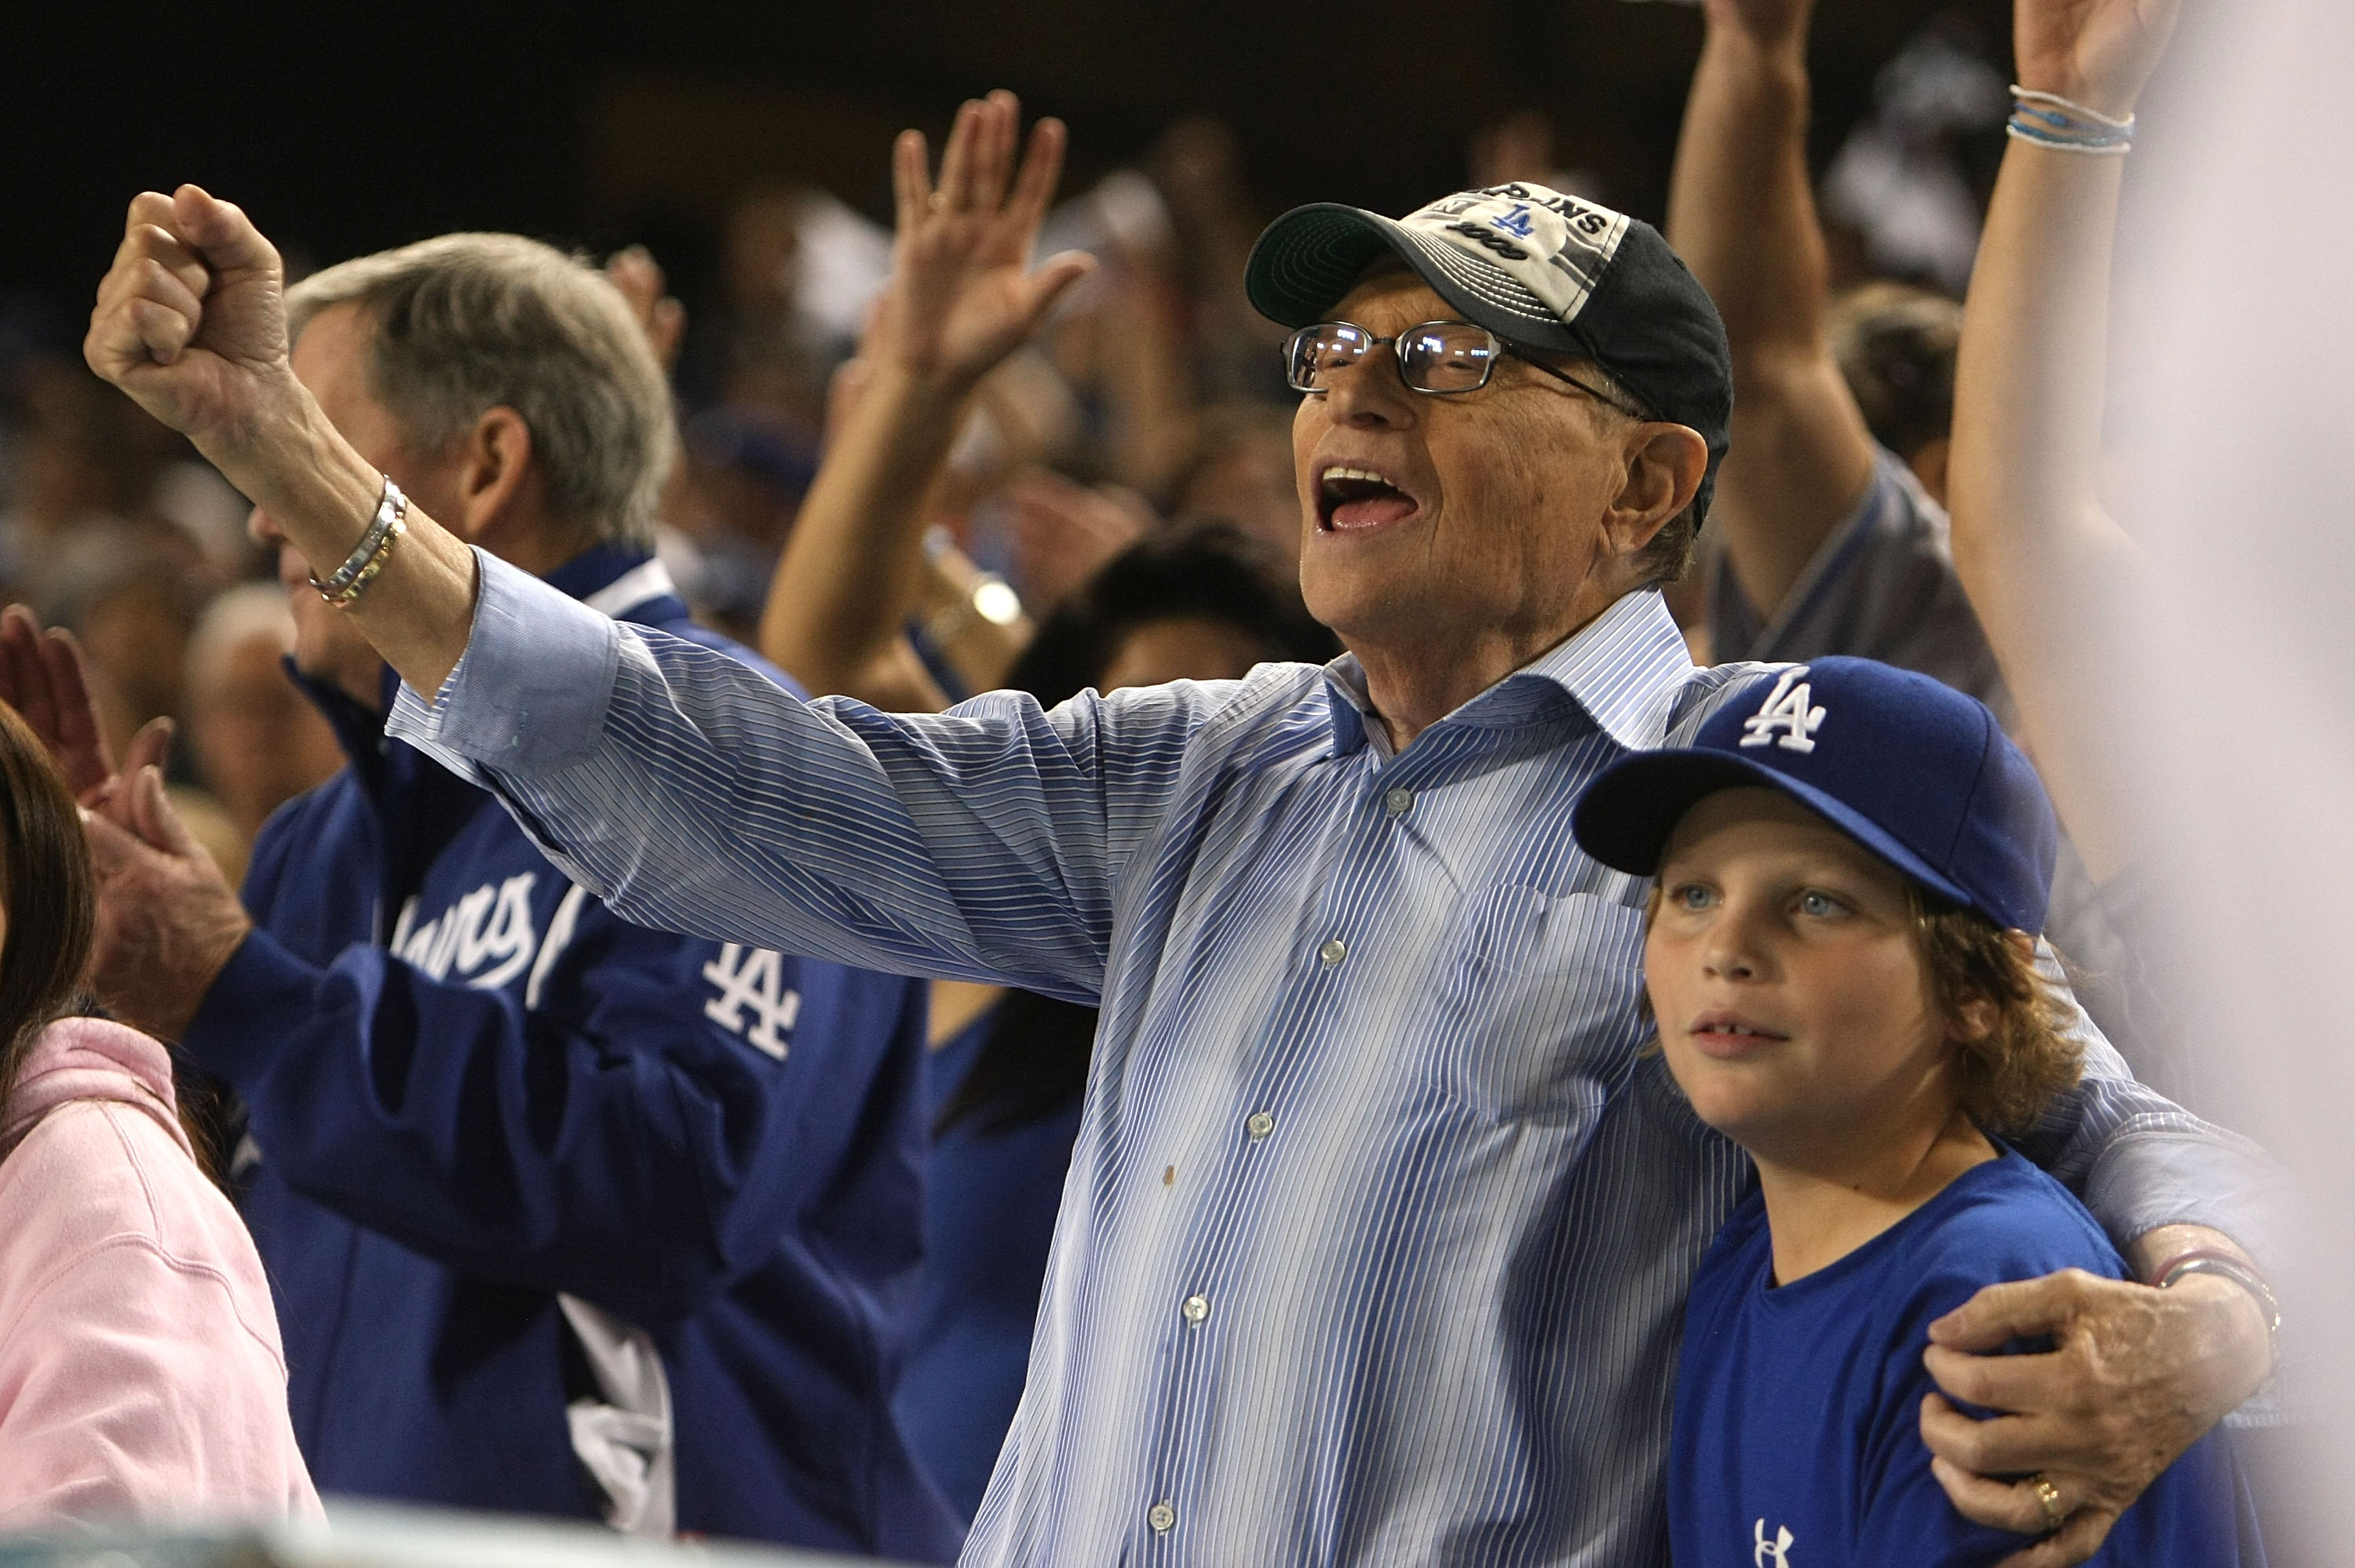 LOS ANGELES, CA - OCTOBER 15:  TV personality Larry King with son cheers on during the seventh inning stretch in Game One of the NLCS between the Philadelphia Phillies and the Los Angeles Dodgers during the 2009 MLB Playoffs at Dodger Stadium on October 1